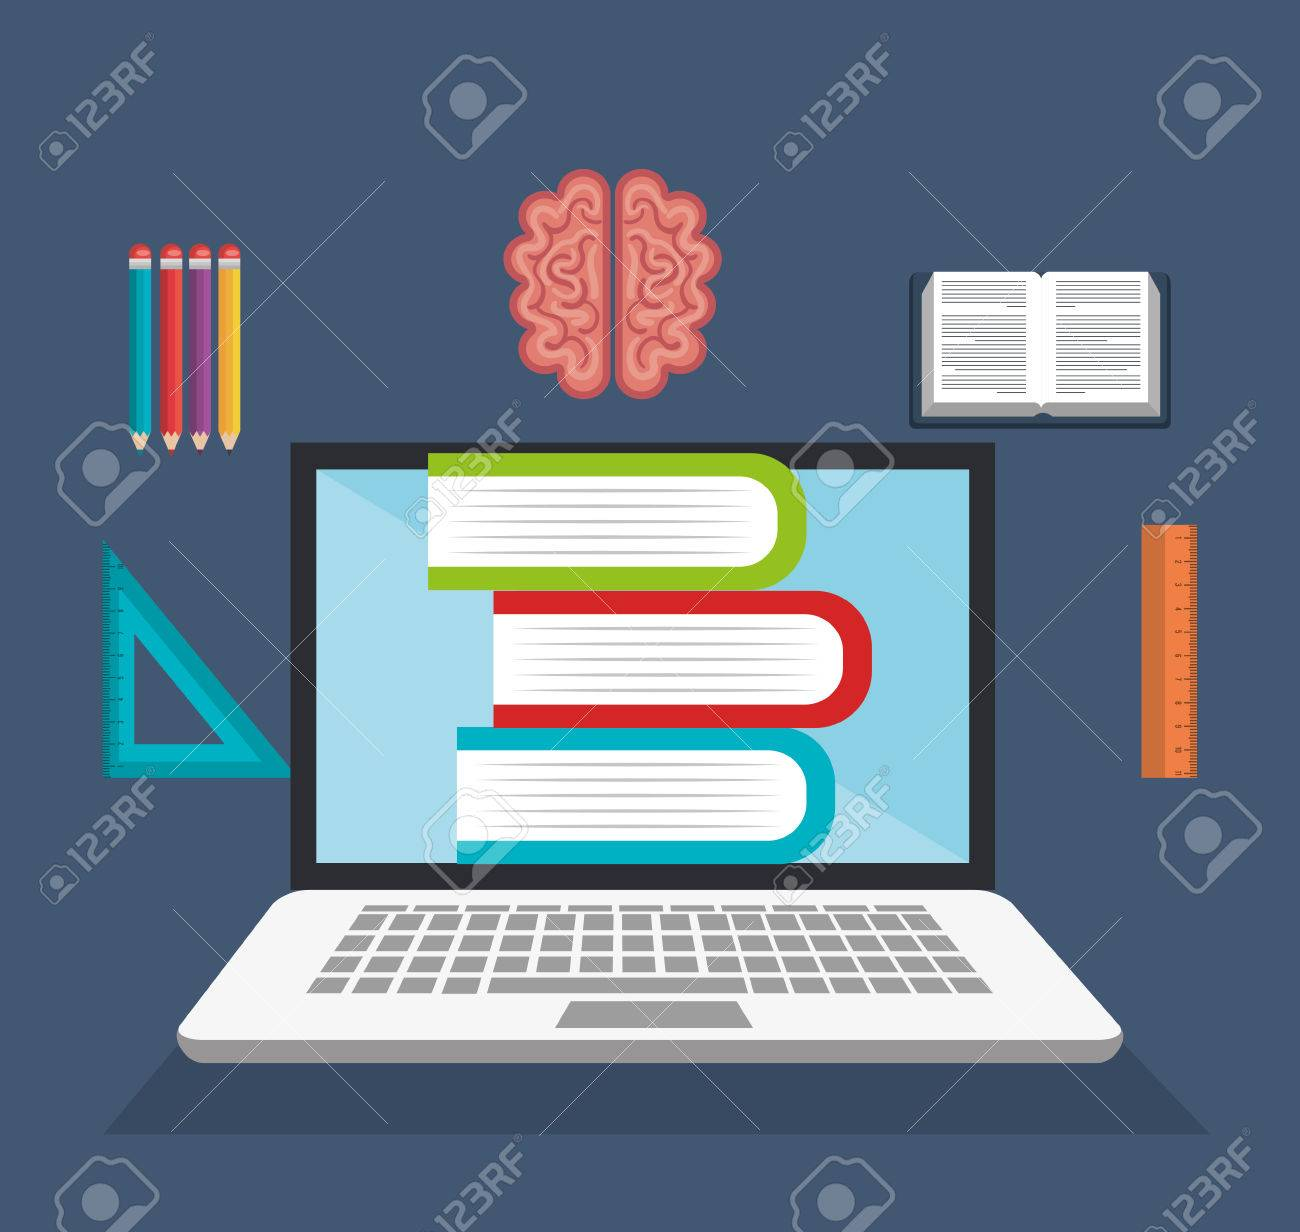 E Learning Library Virtual Education Online Design Graphic Vector Royalty Free Cliparts Vectors And Stock Illustration Image 63079201